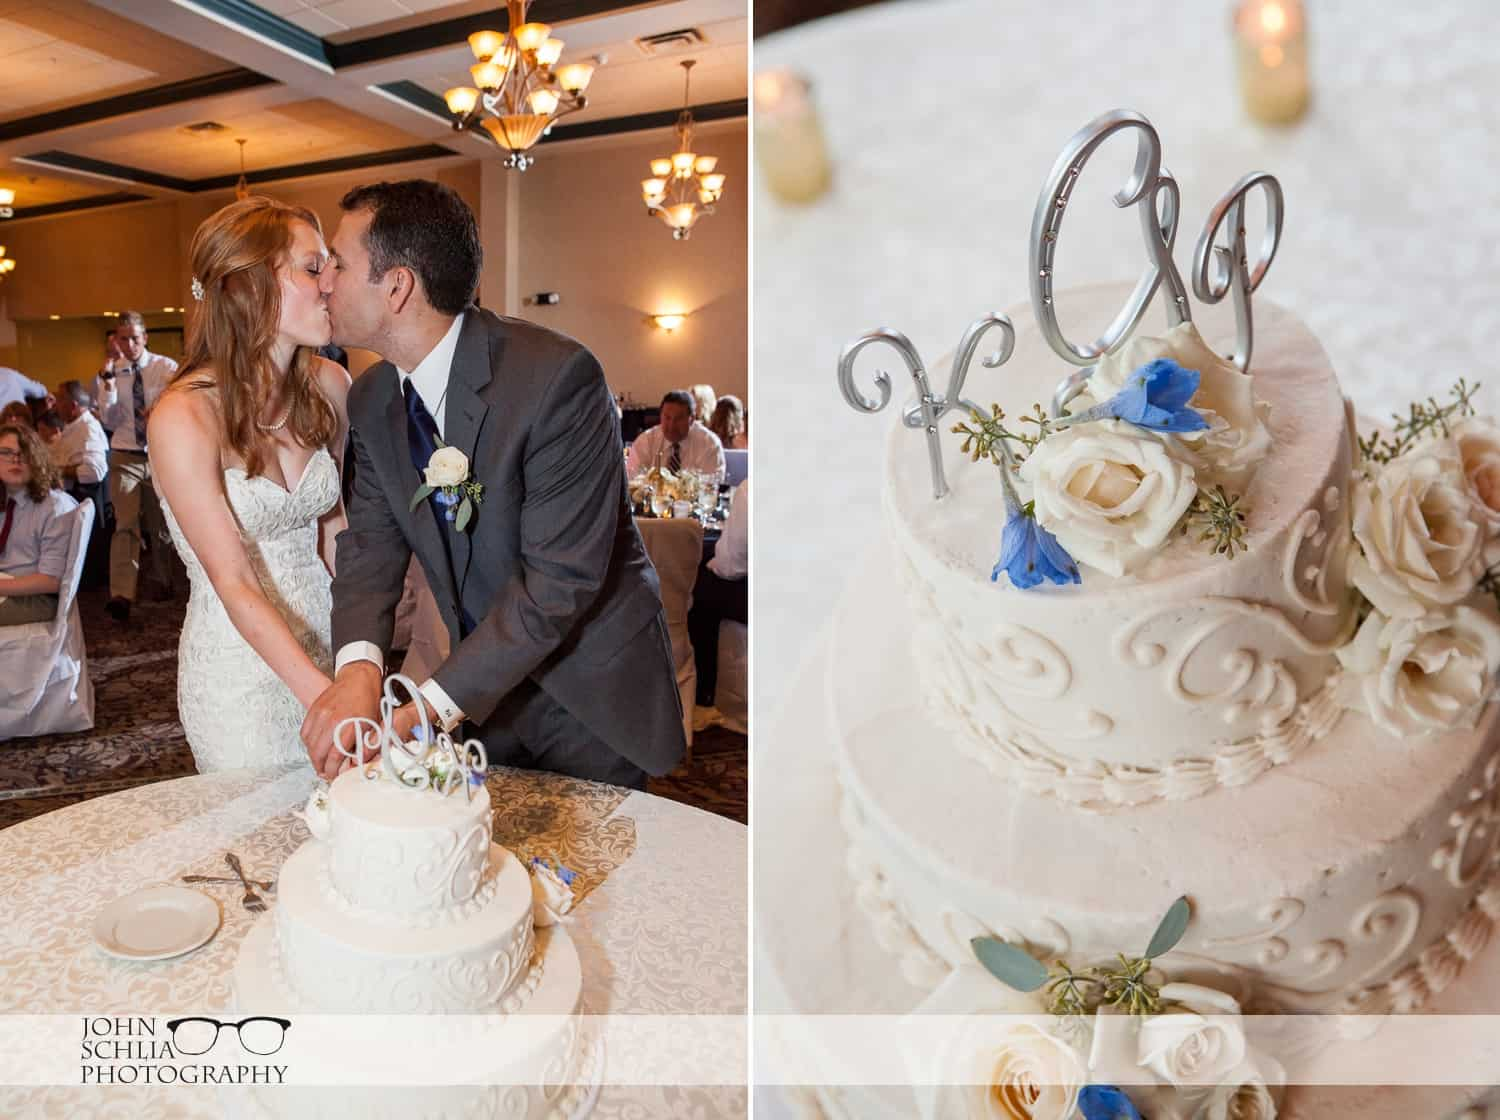 008-bagels-and-cakes-wedding